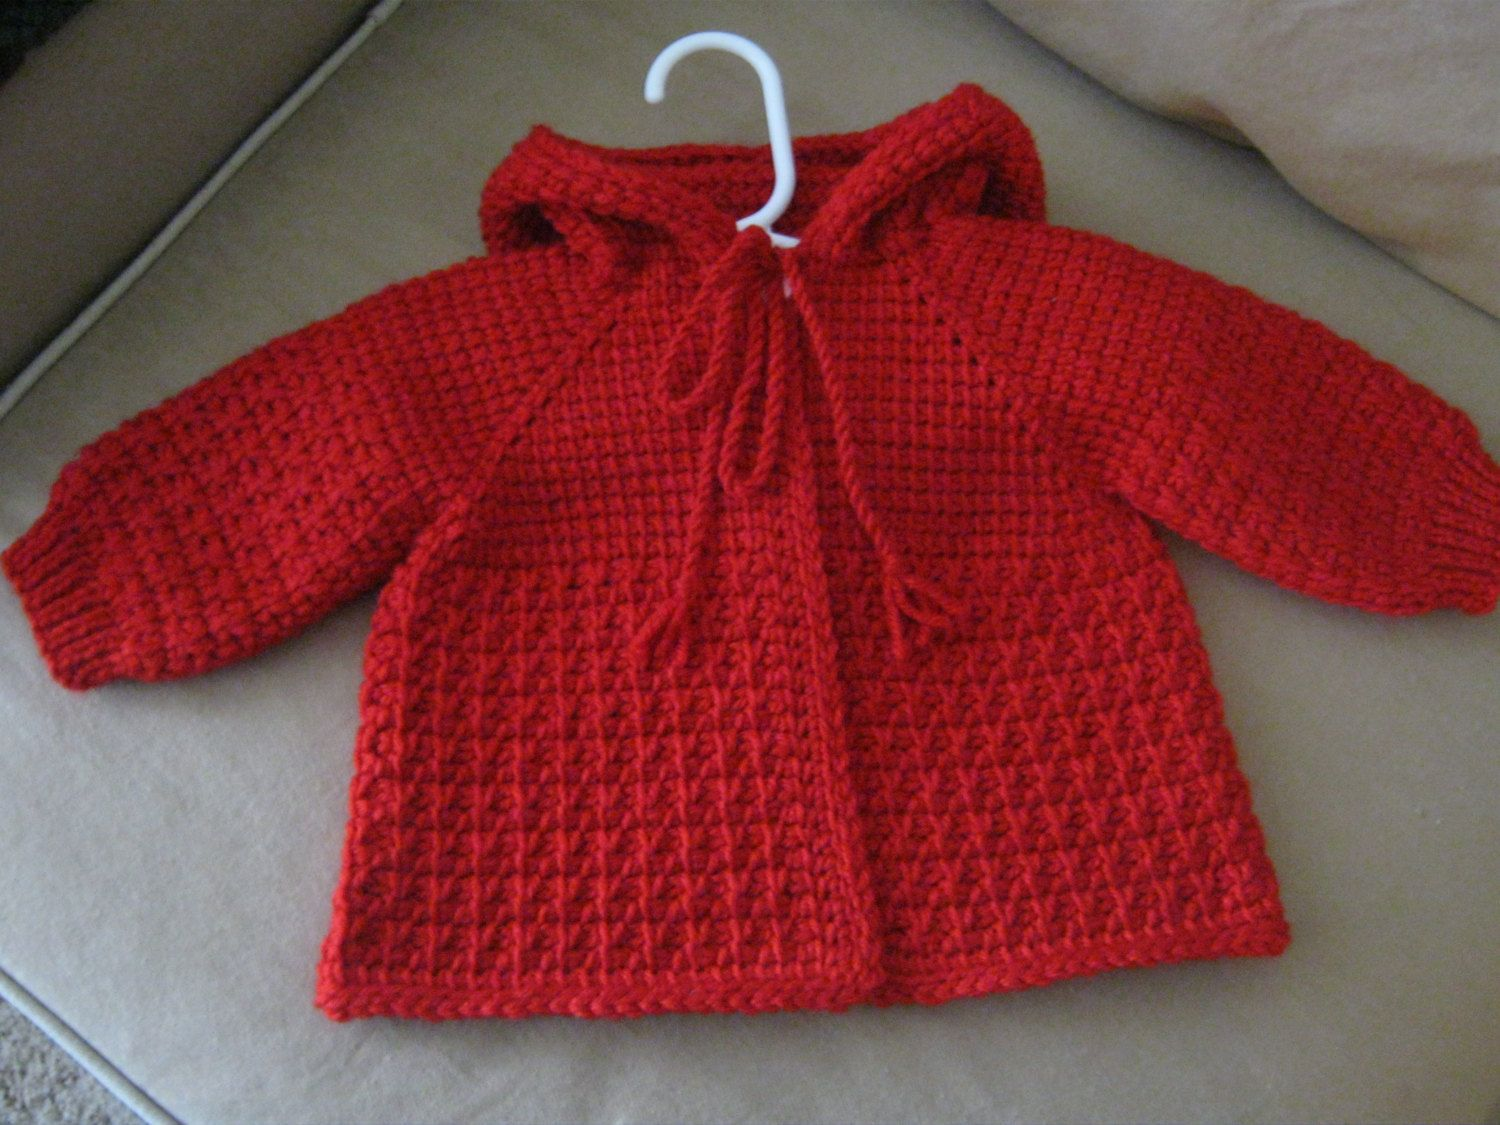 Red crochet baby sweater with hood for boy or girl tunisian red crochet baby sweater with hood for boy or girl tunisian crochet made to order handmade valentines day christmas bankloansurffo Gallery